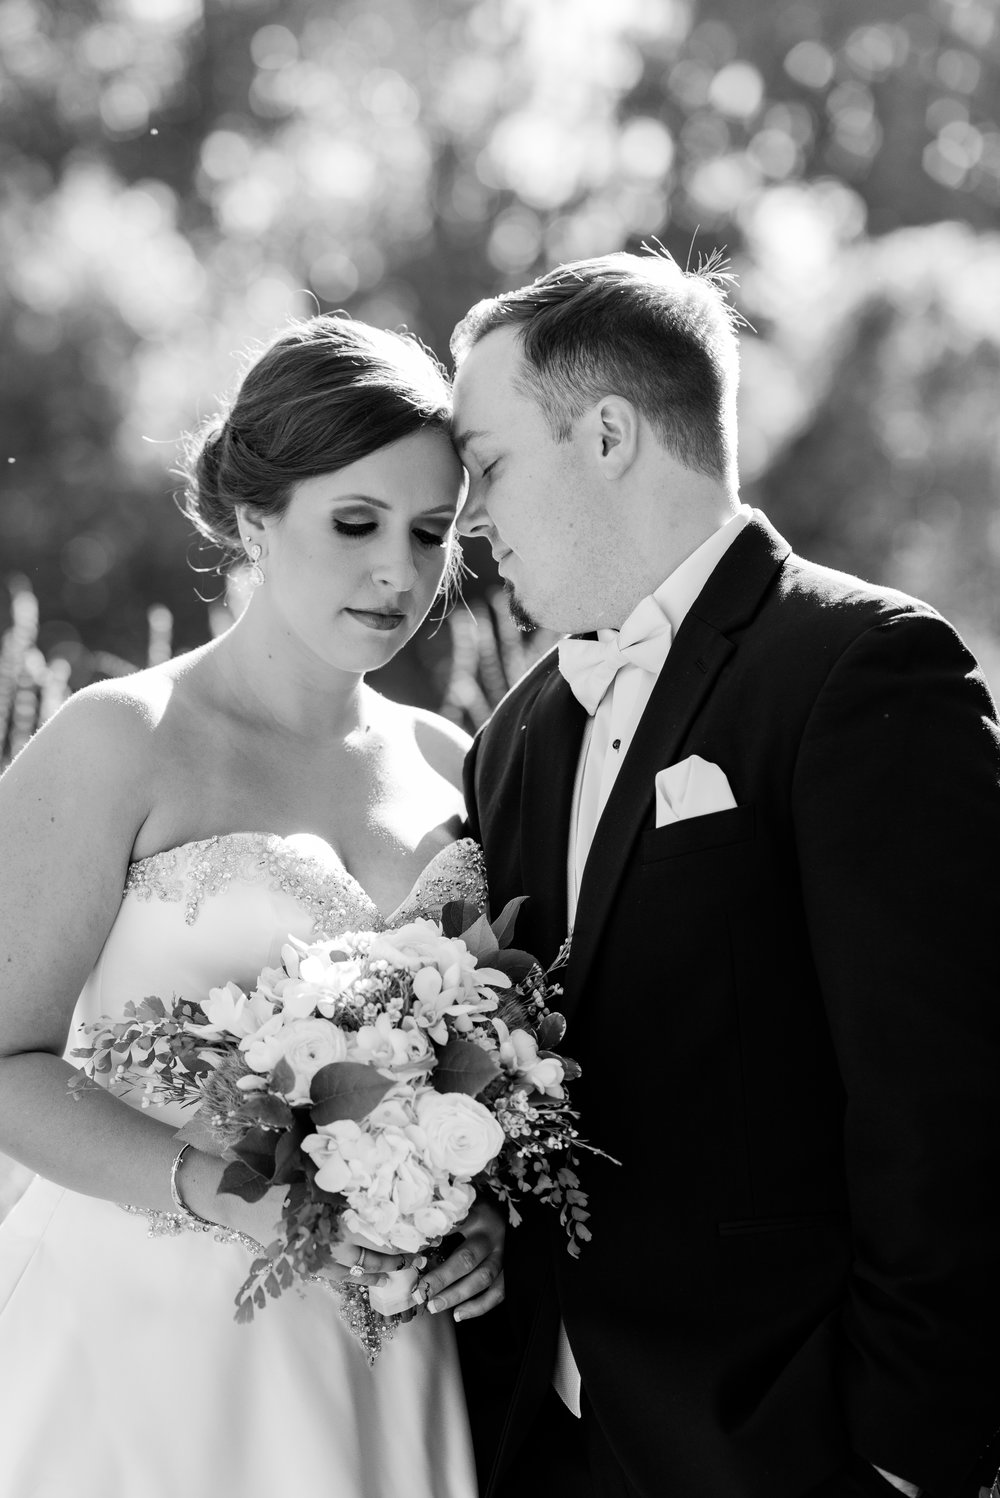 Bride and Groom Portraits - A Black Tie, South Carolina Commerce Club Wedding